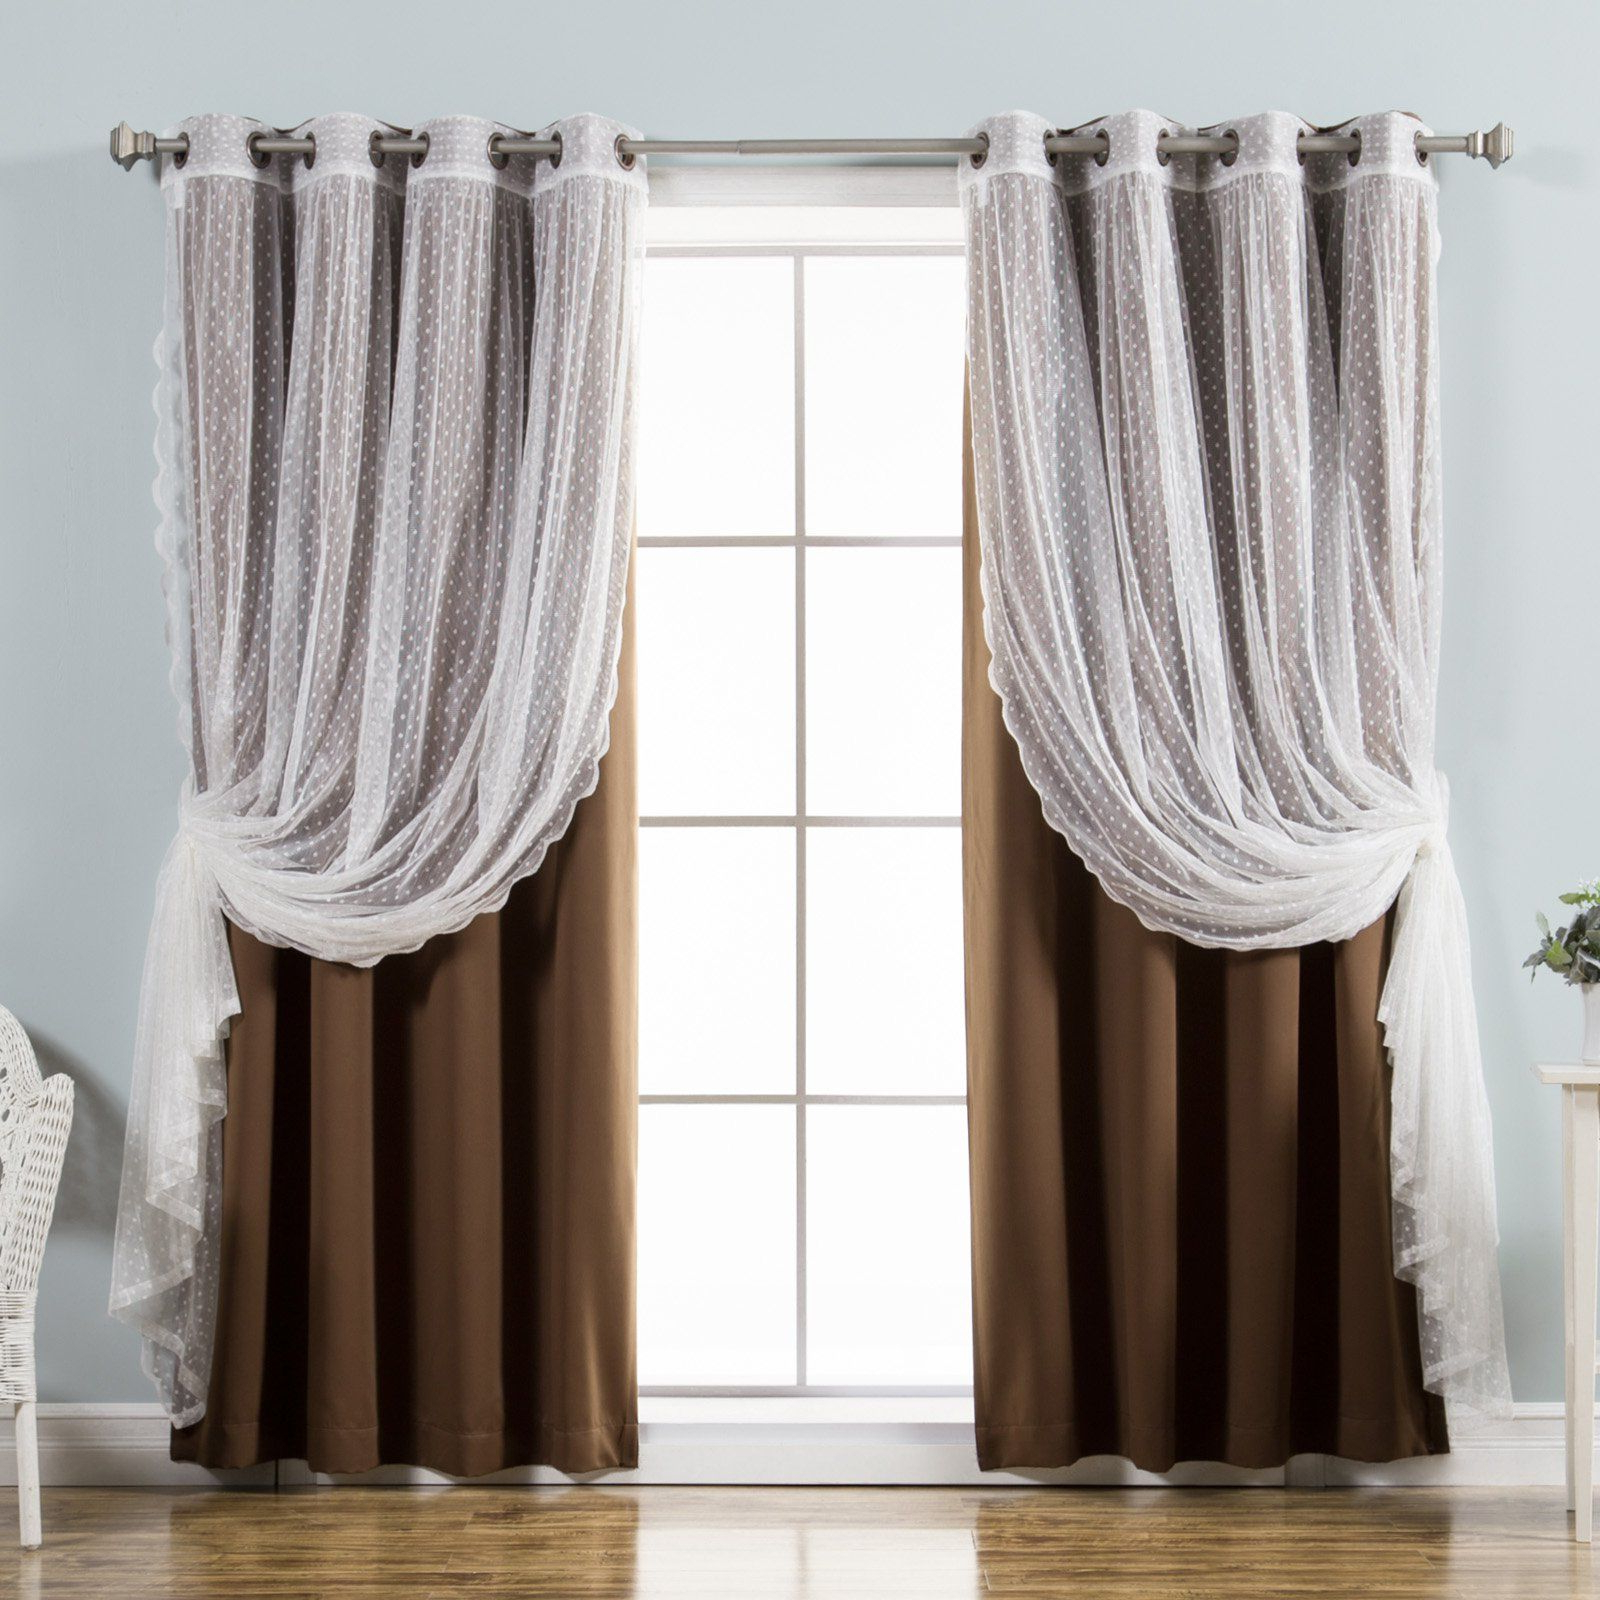 Best Home Fashion Dotted Tulle Blackout Mix & Match Curtain With Regard To Well Known Mix And Match Blackout Blackout Curtains Panel Sets (View 6 of 20)